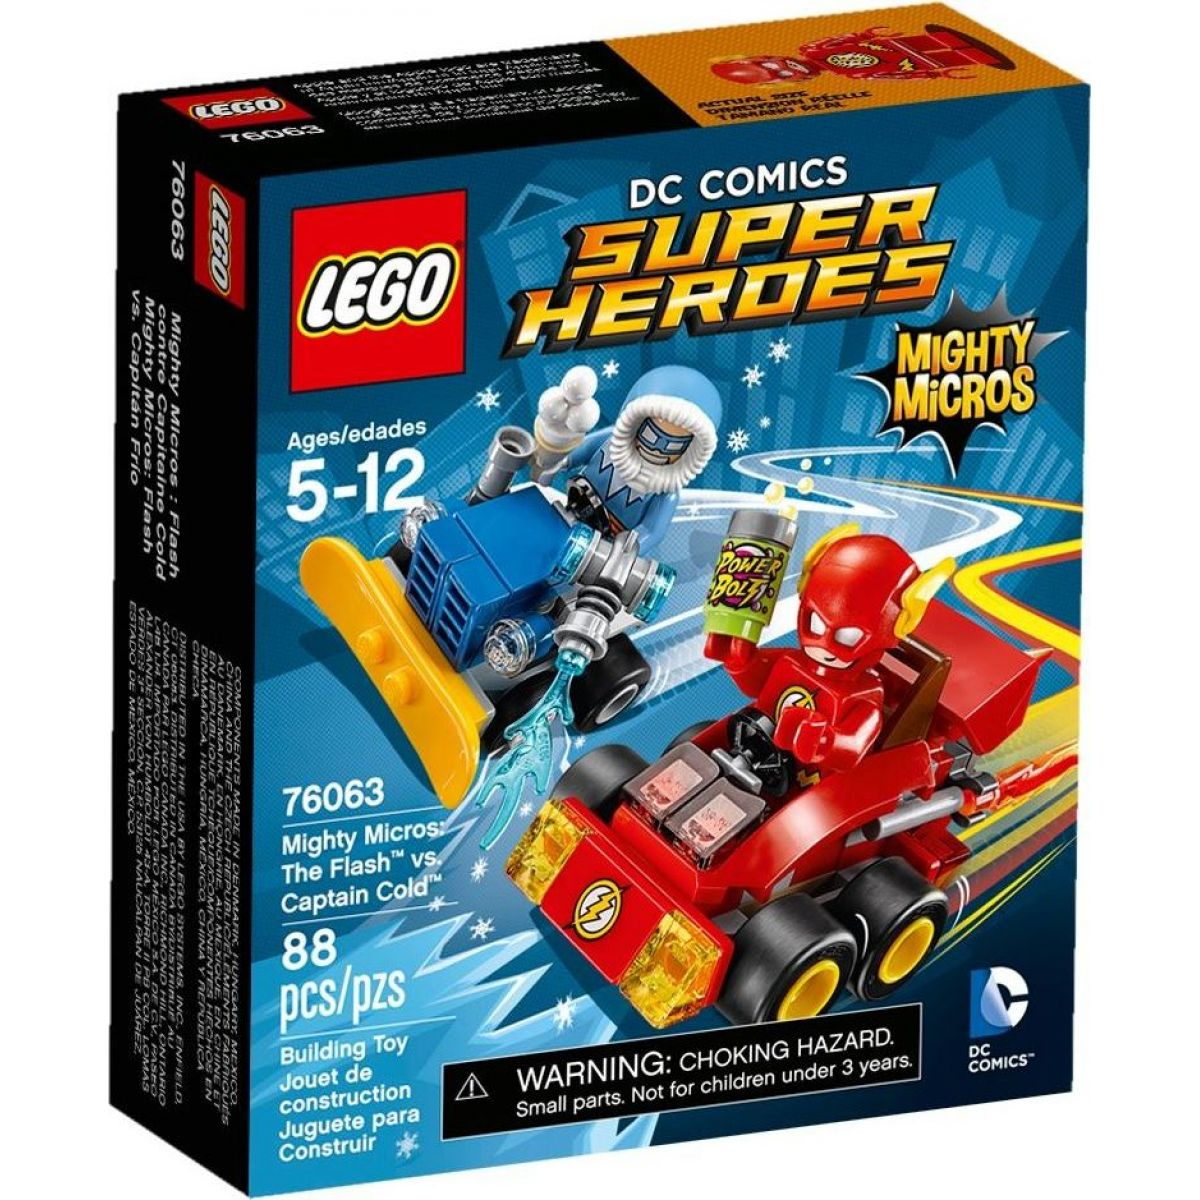 LEGO Super Heroes 76063 Mighty Micros: Flash vs. Kapitán Cold